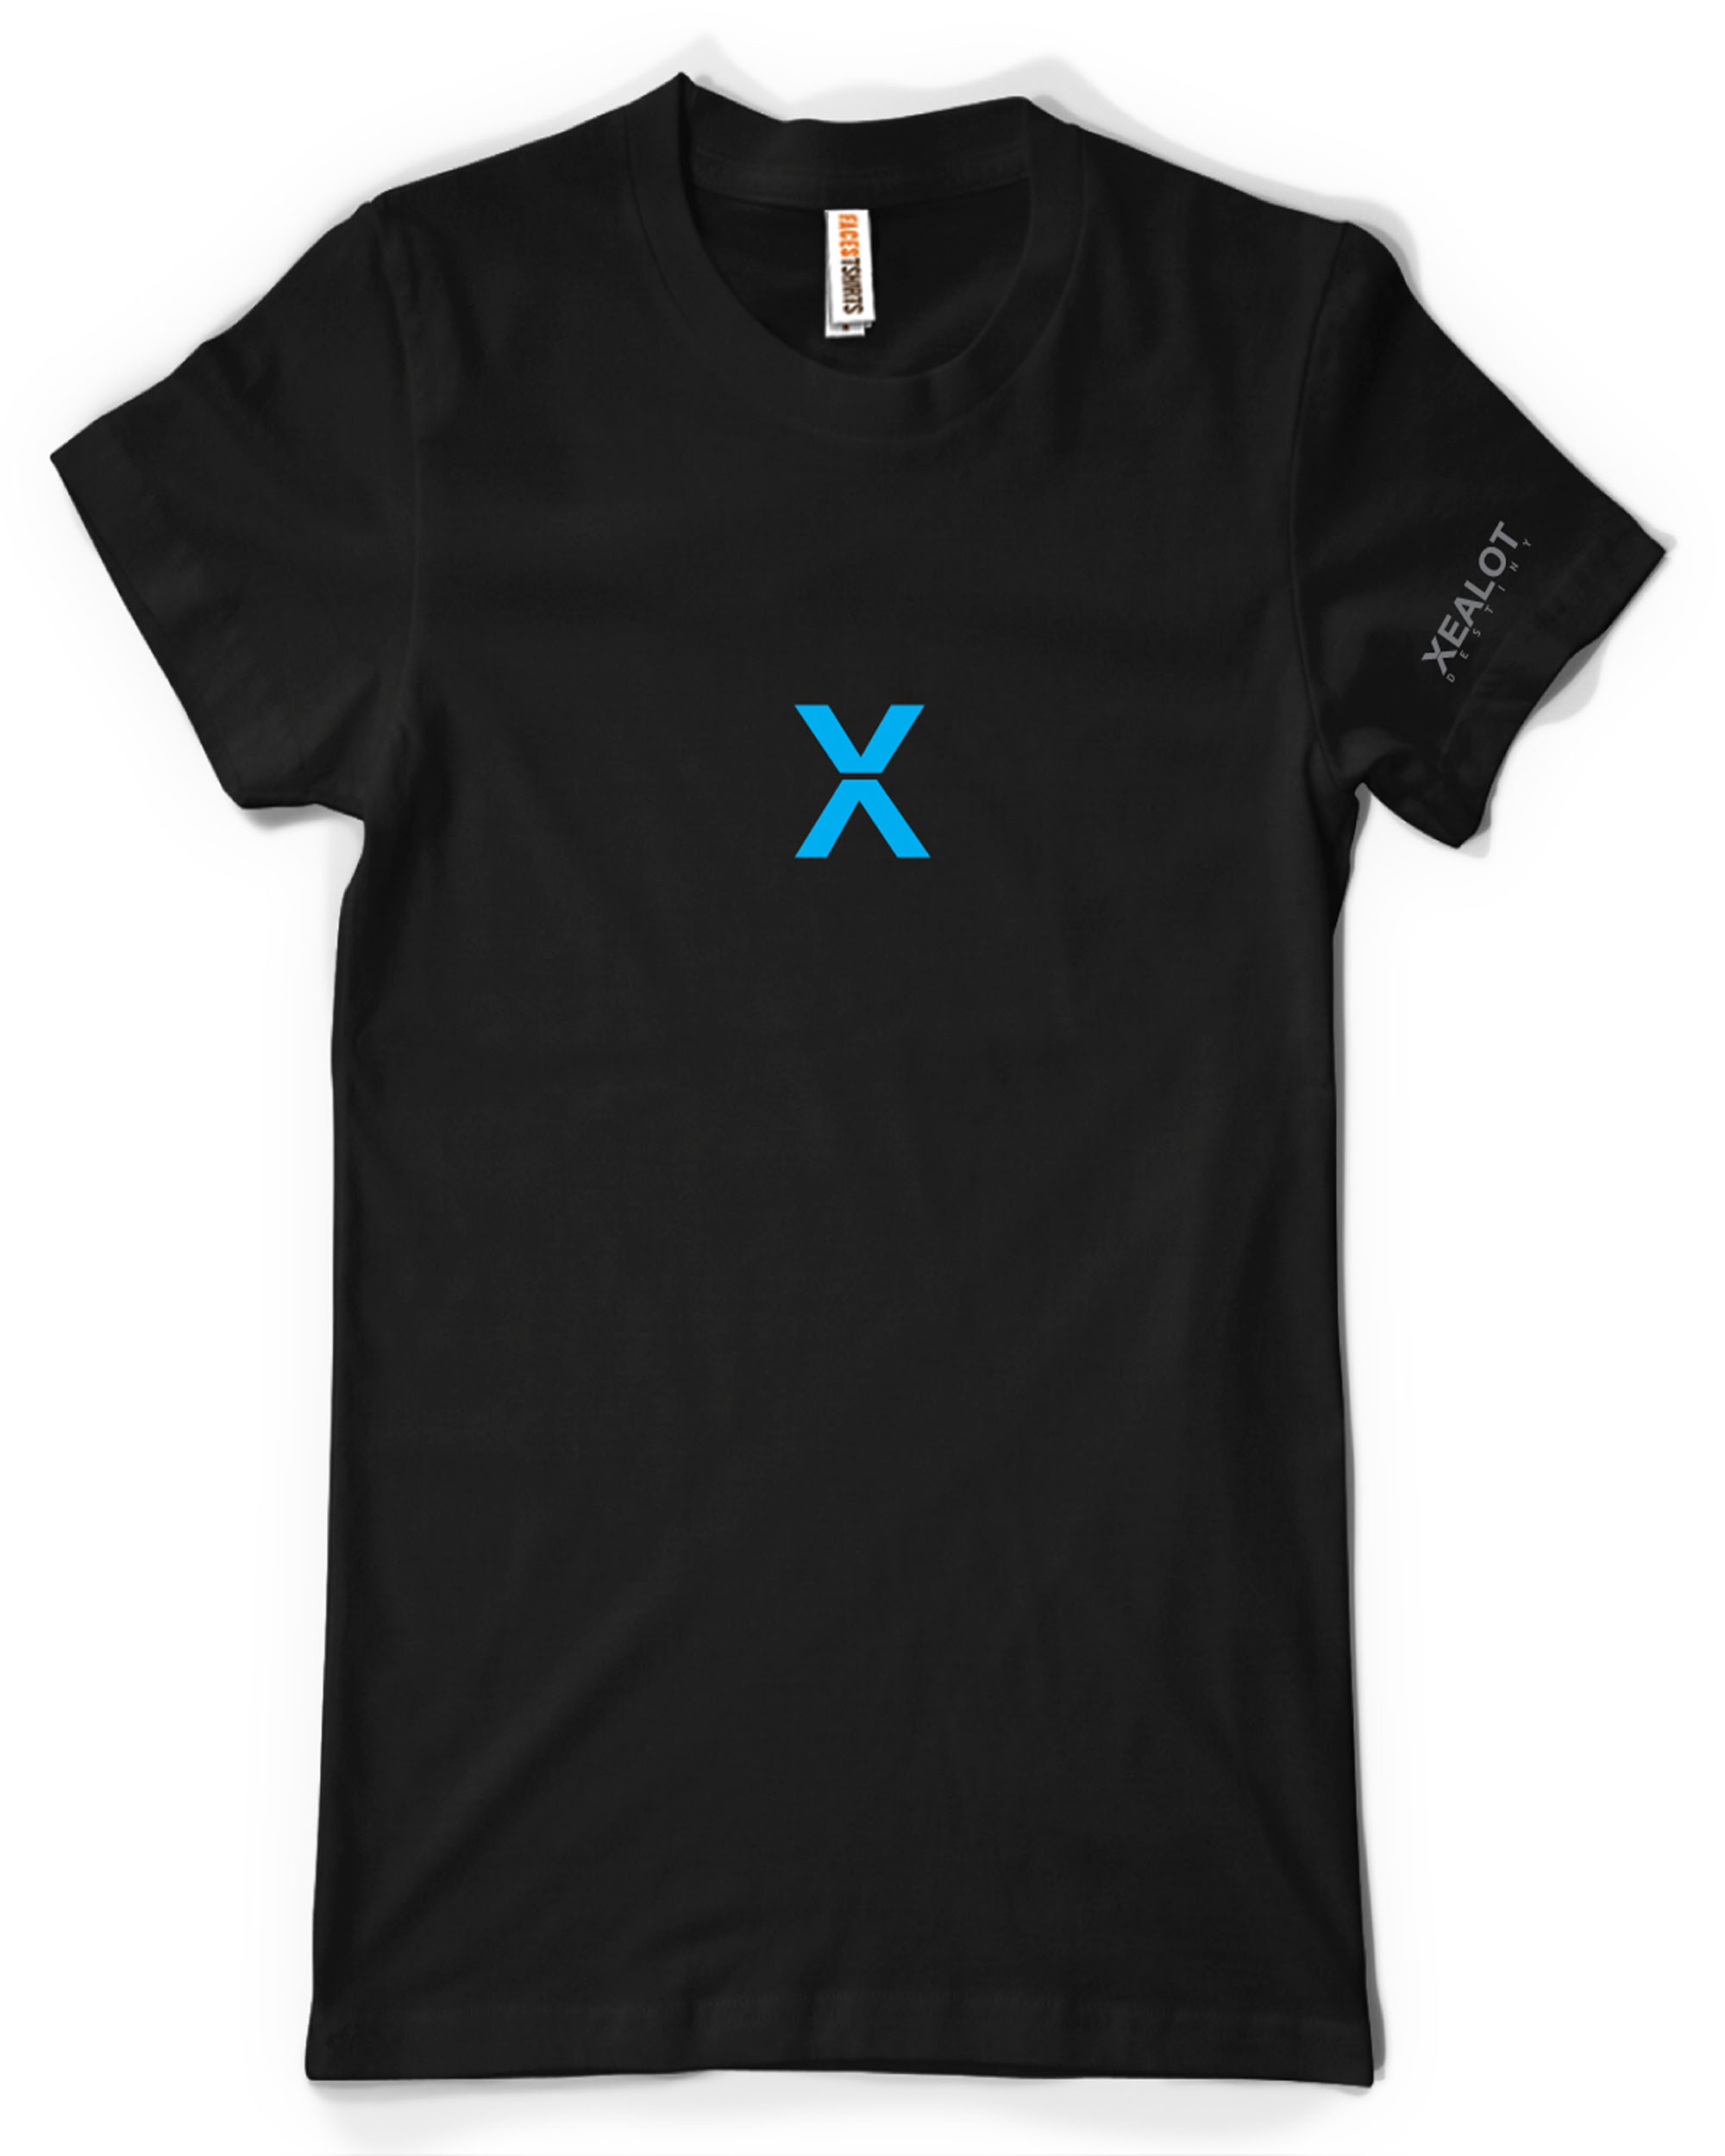 Xealots xealot t shirt online store powered by storenvy for T shirt printing for non profit organizations